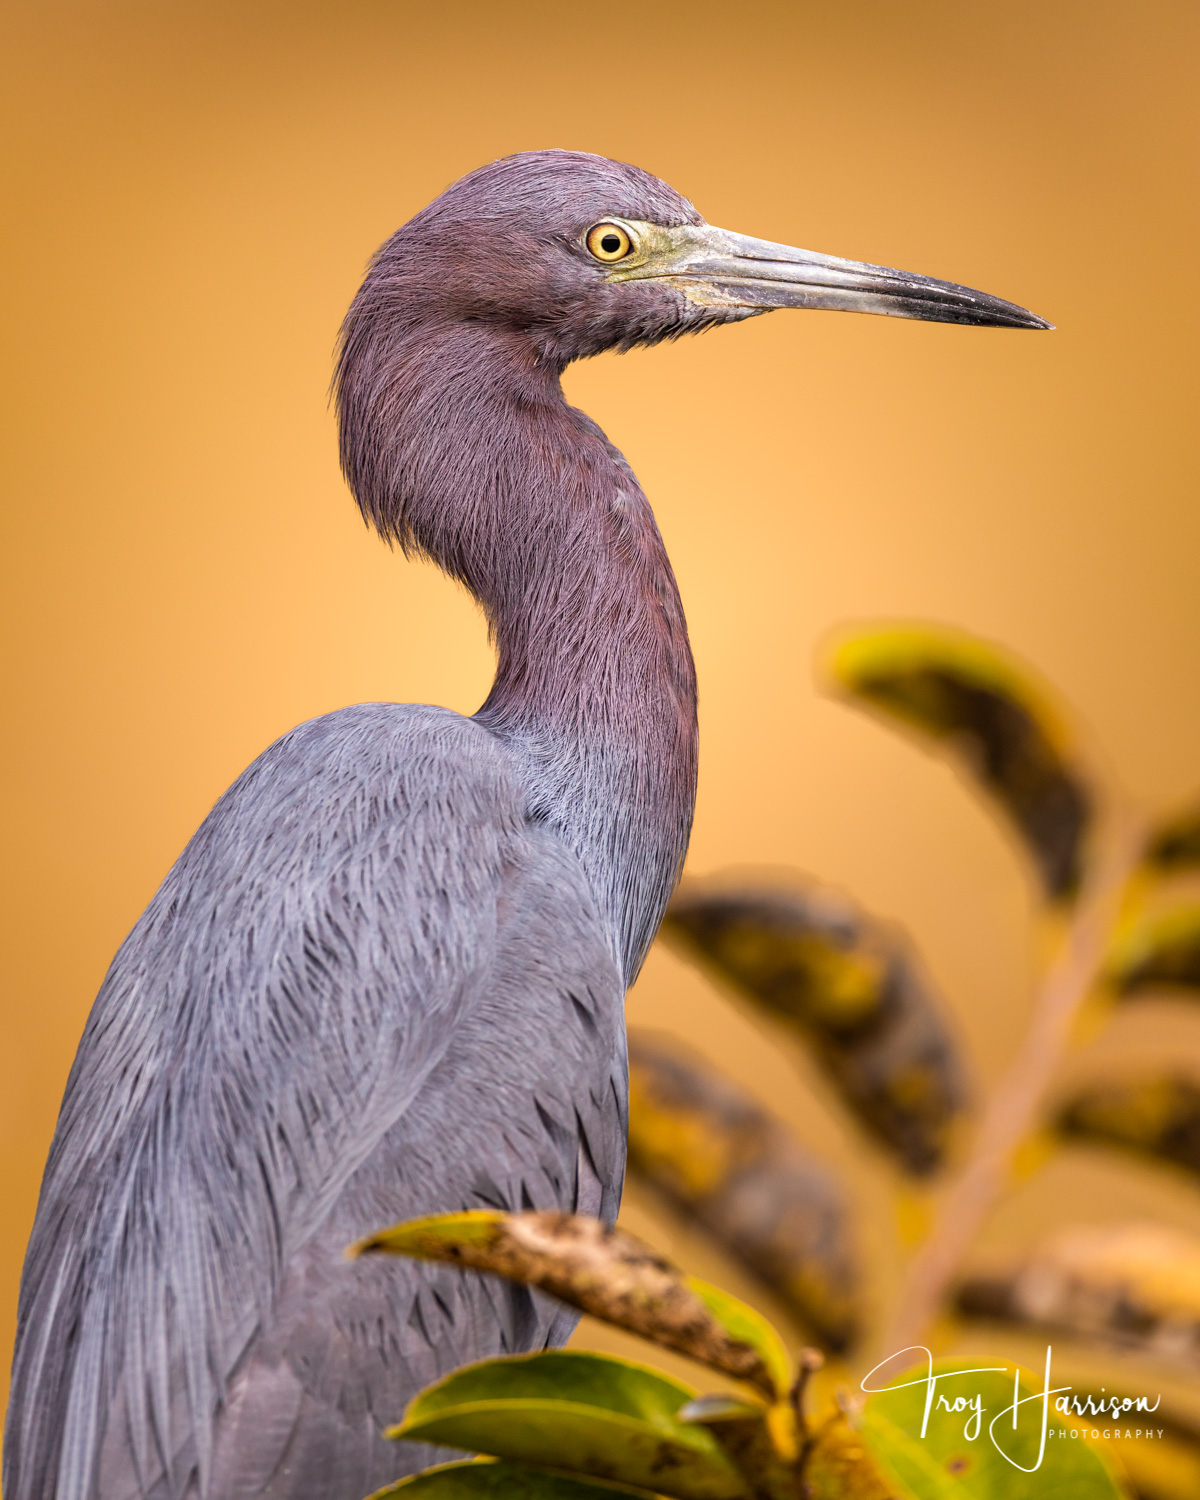 1 - Little Blue Heron, Everglades, Nov. 2018, img 1906.jpg